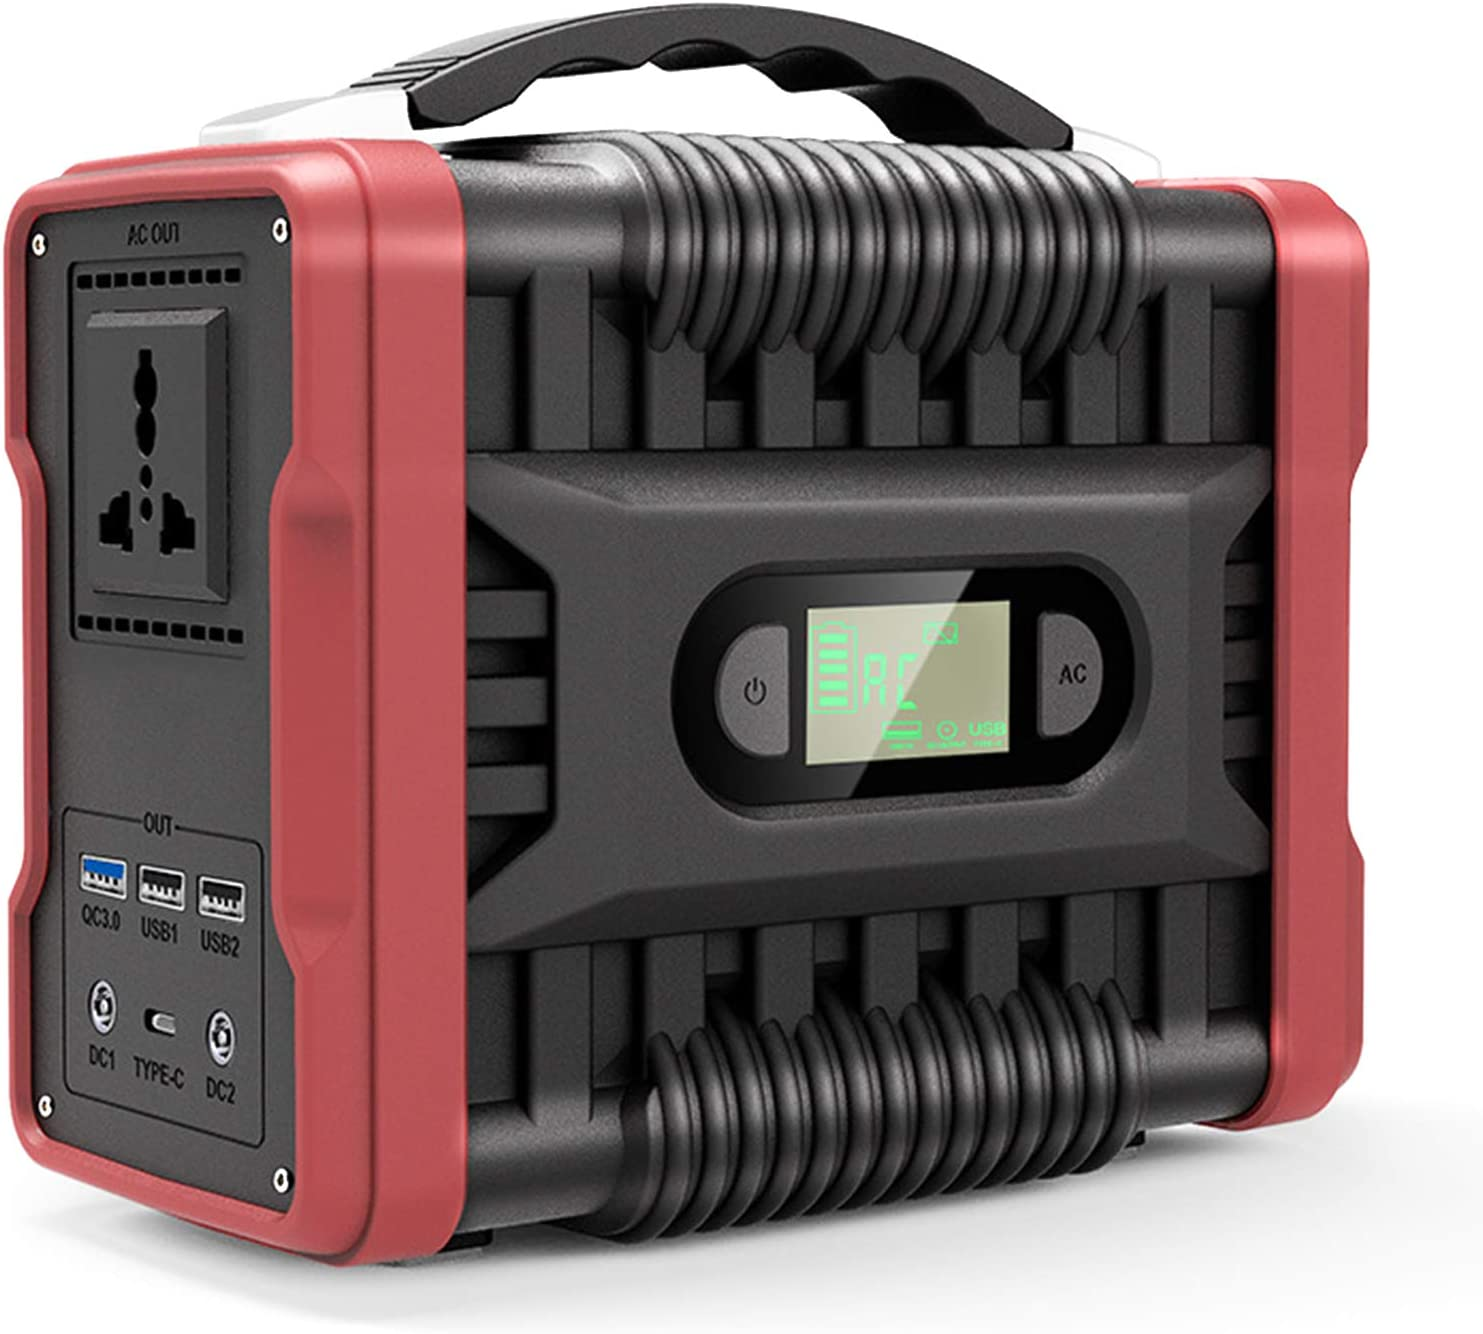 TGHY 200W Portable Power Station 222Wh Outdoor Lithium Battery Pack Solar Generator Emergency Backup Power Supply 60000mAh Heavy Duty Waterproof for Outdoors Camping Fishing Hunting